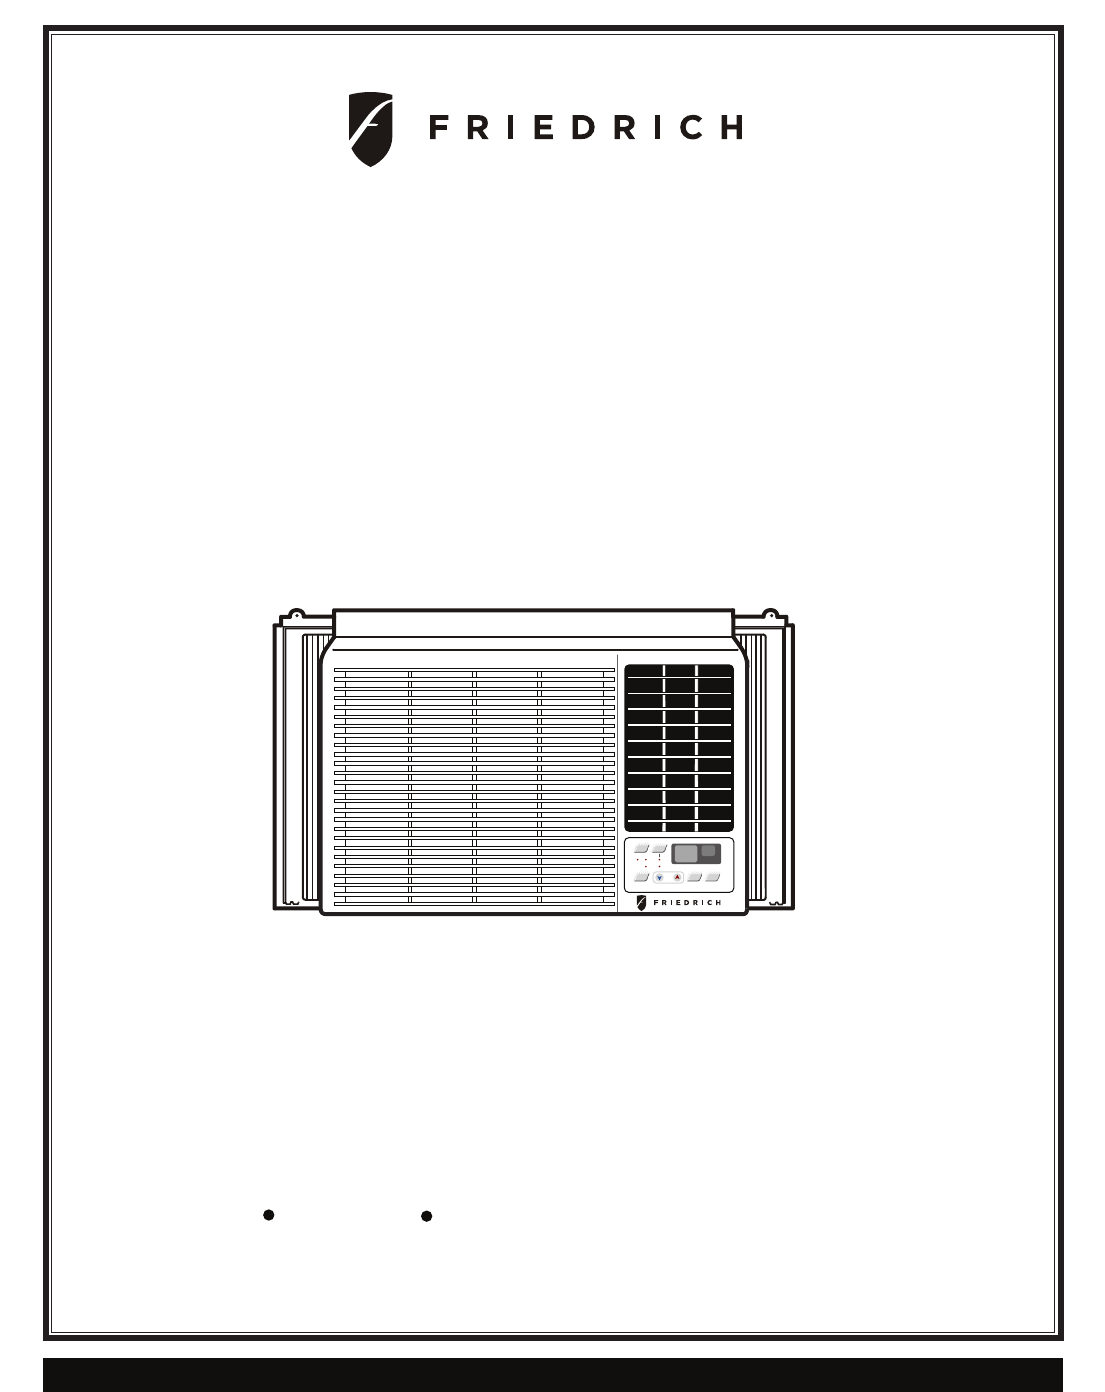 Friedrich Cp10f10 Users Manual. Room Air Conditioner. Wiring. Friedrich Capacitor Wire Diagram At Scoala.co